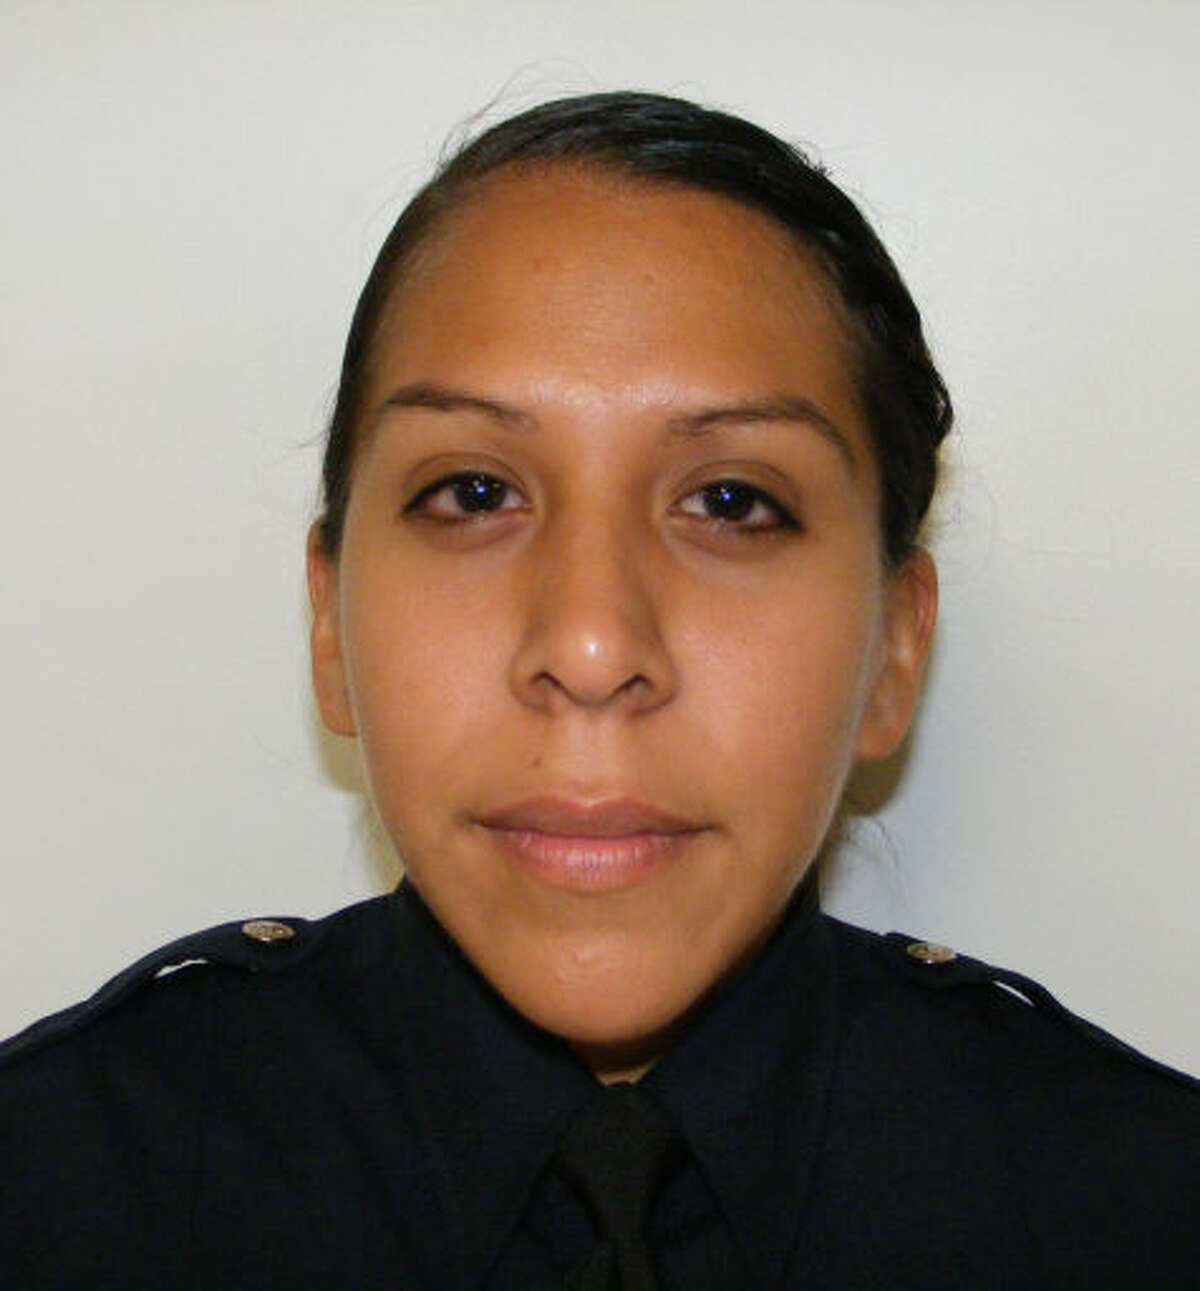 BCSO Deputy Yesenia Rios, was arrested and charged with one count of DWI, Saturday July 7, 2018.